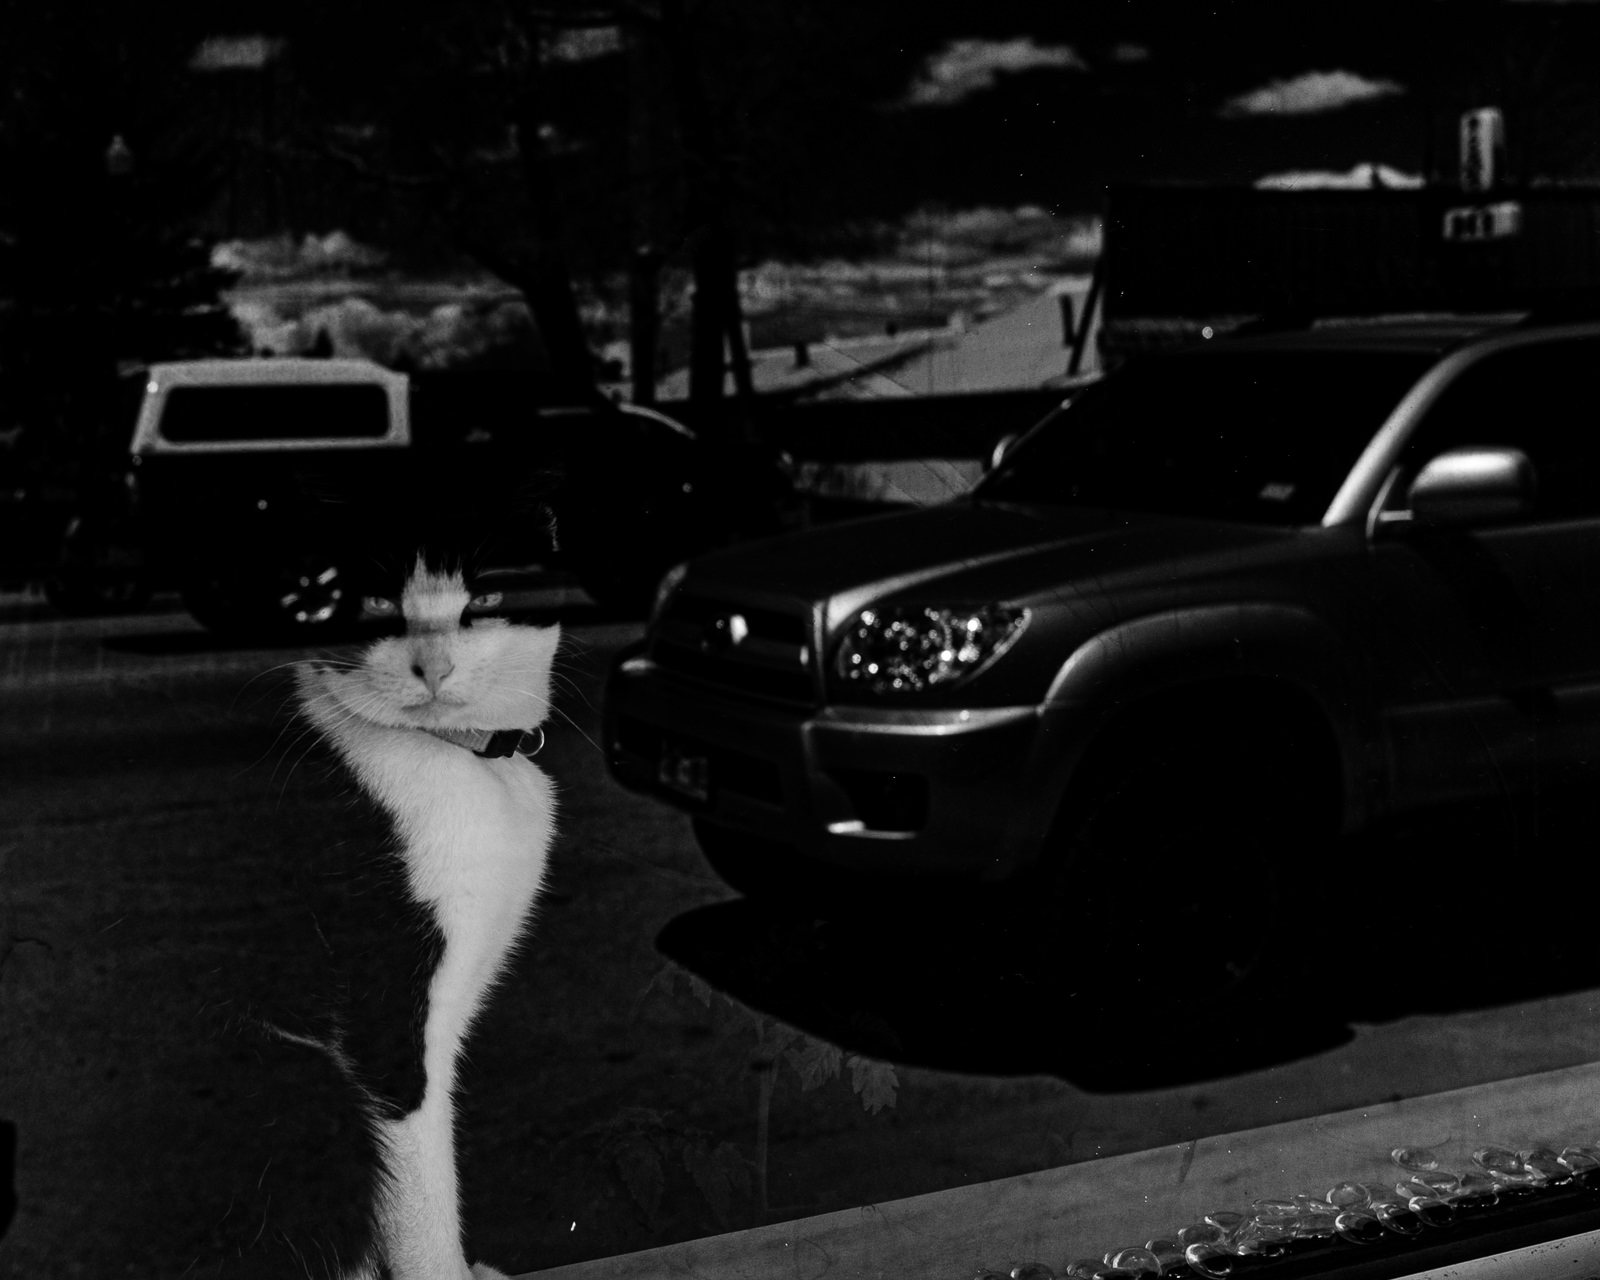 Day 150- 365 Day B&W Photo Challenge - Cat peering out the window as traffic passes by in Walden, Colorado- Fuji X-T3, XF23mm f/2, Acros R Film Simulation